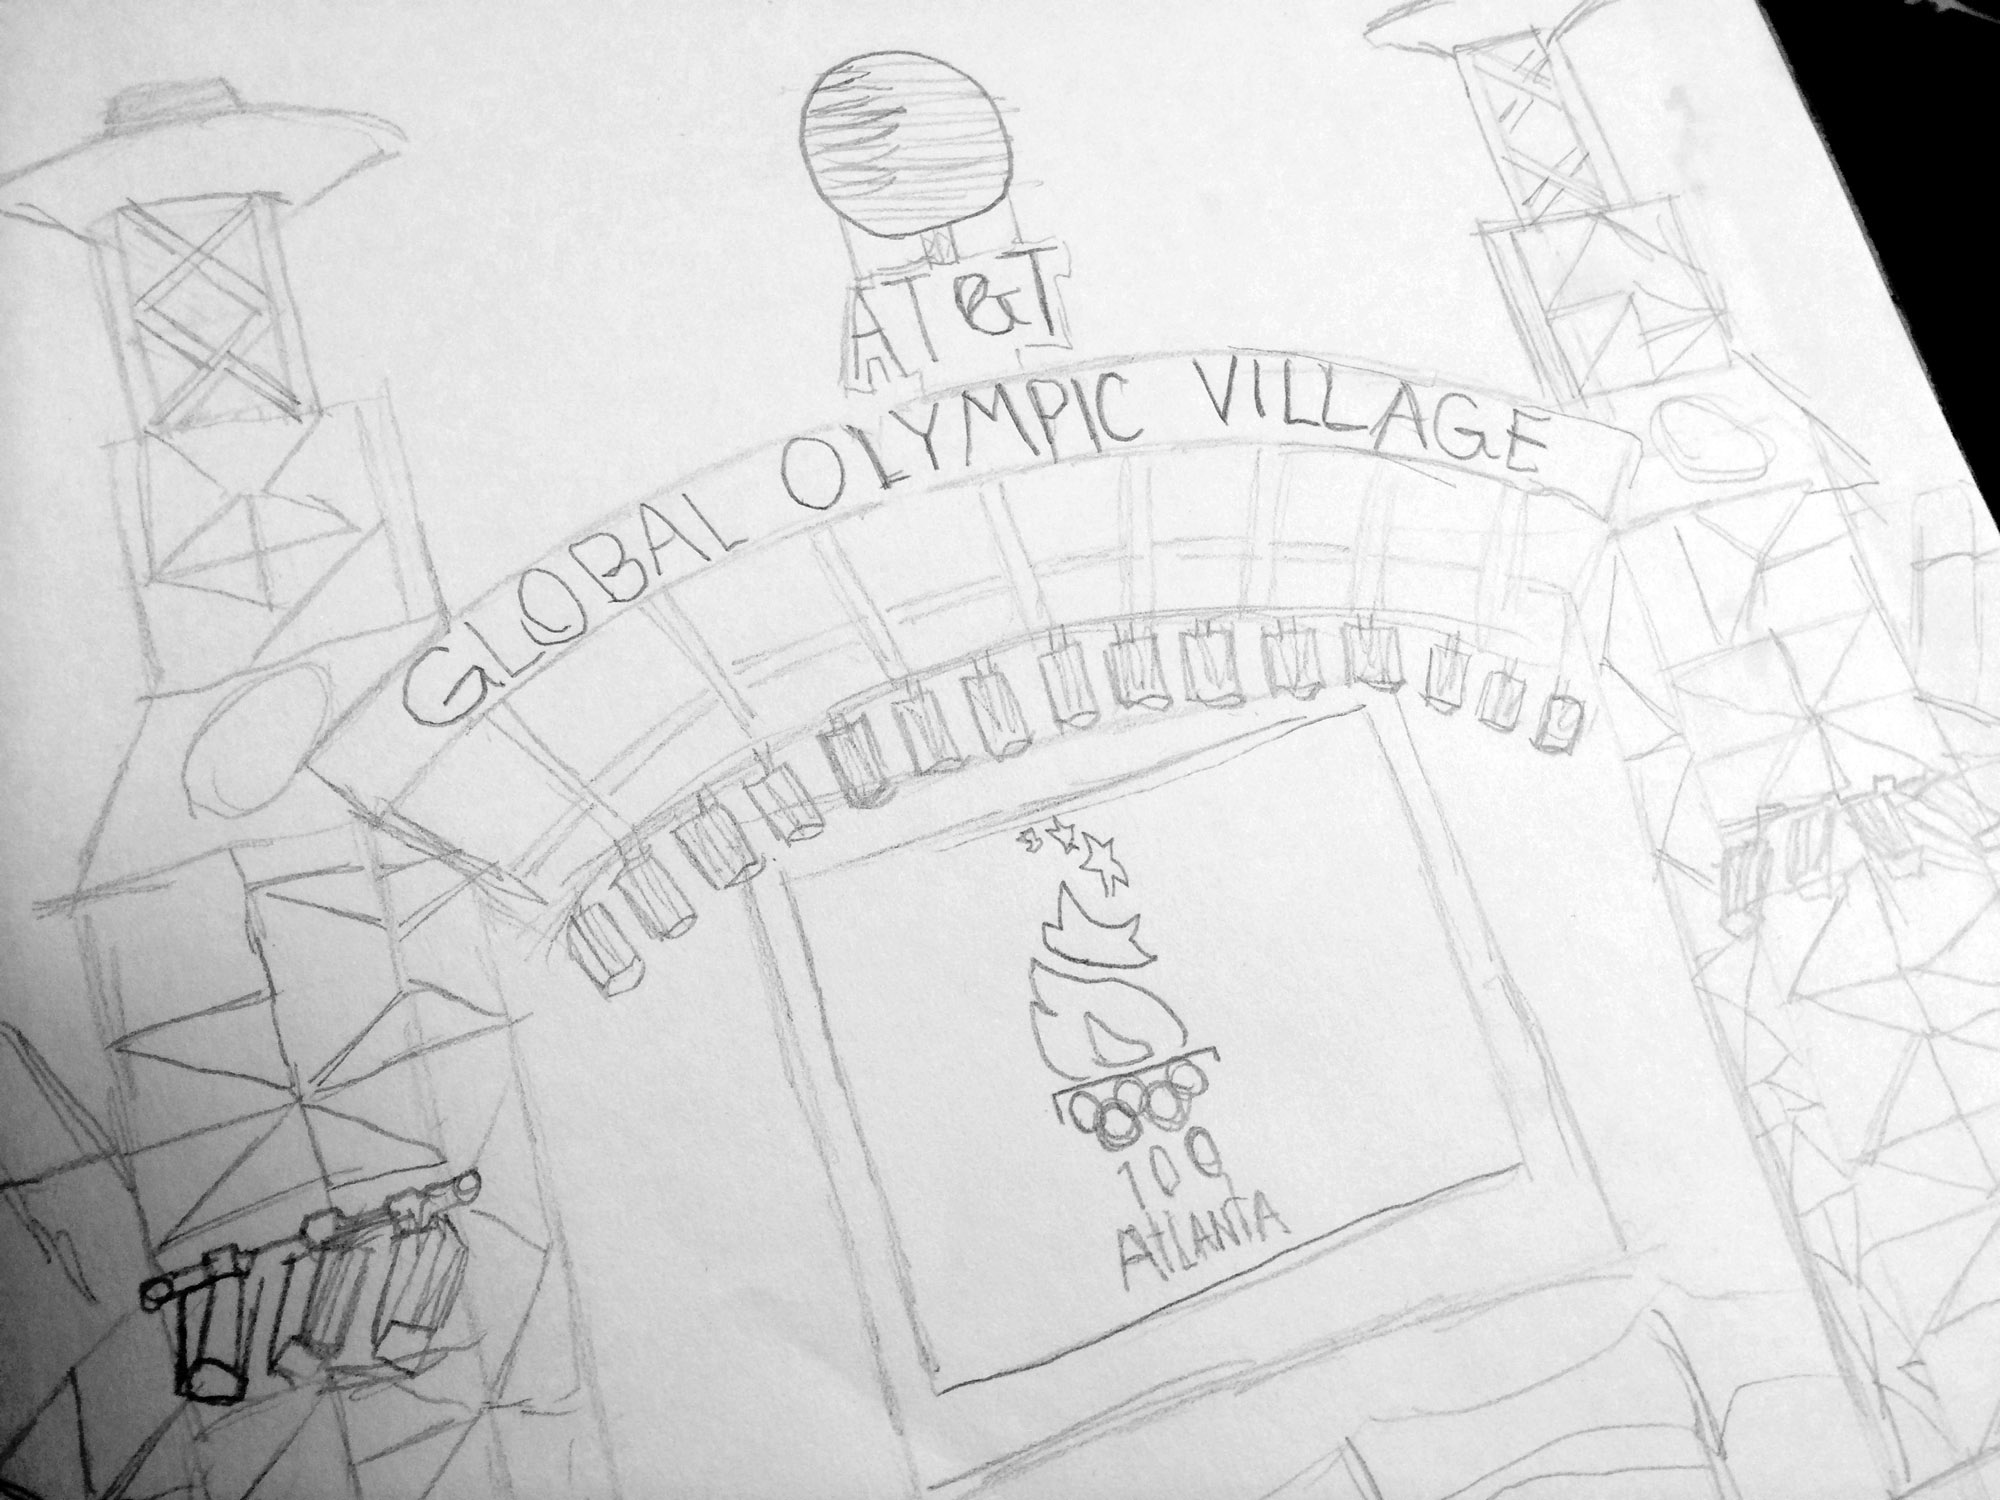 Raisch_Atlanta_Olympics-Sketch-2